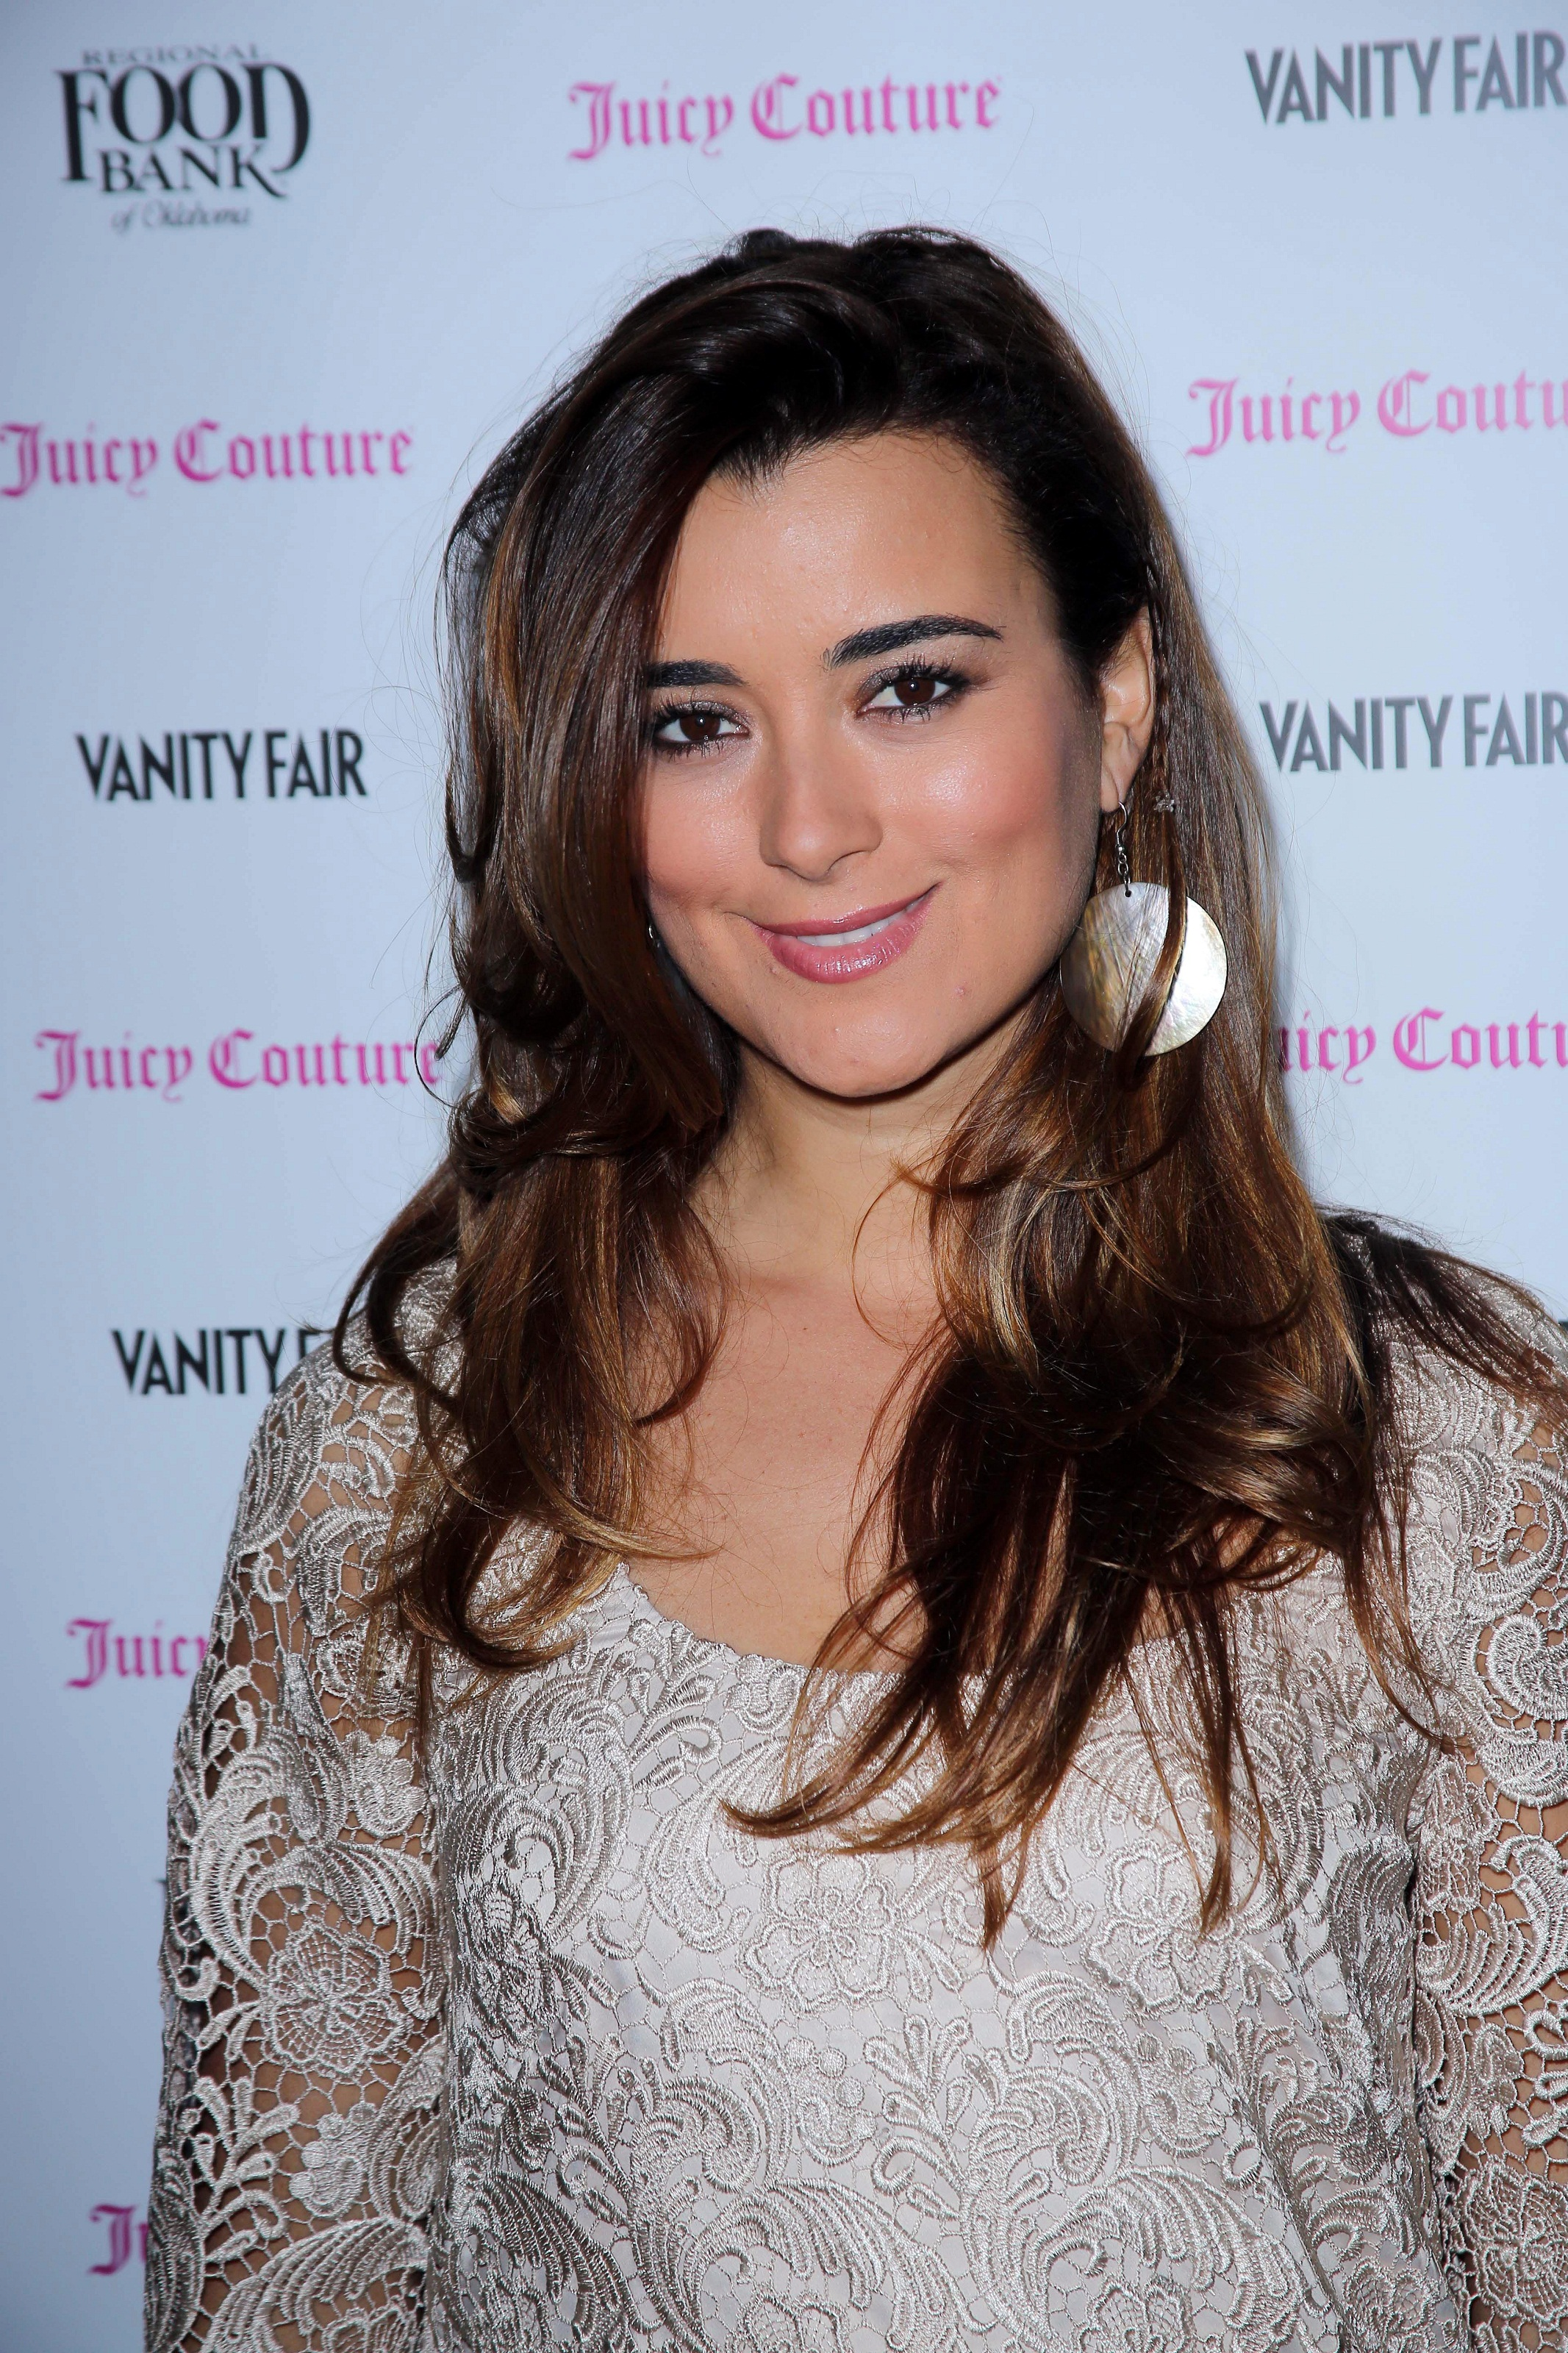 Cote de Pablo Vanity Fair Campaign Hollywood Feb 2013